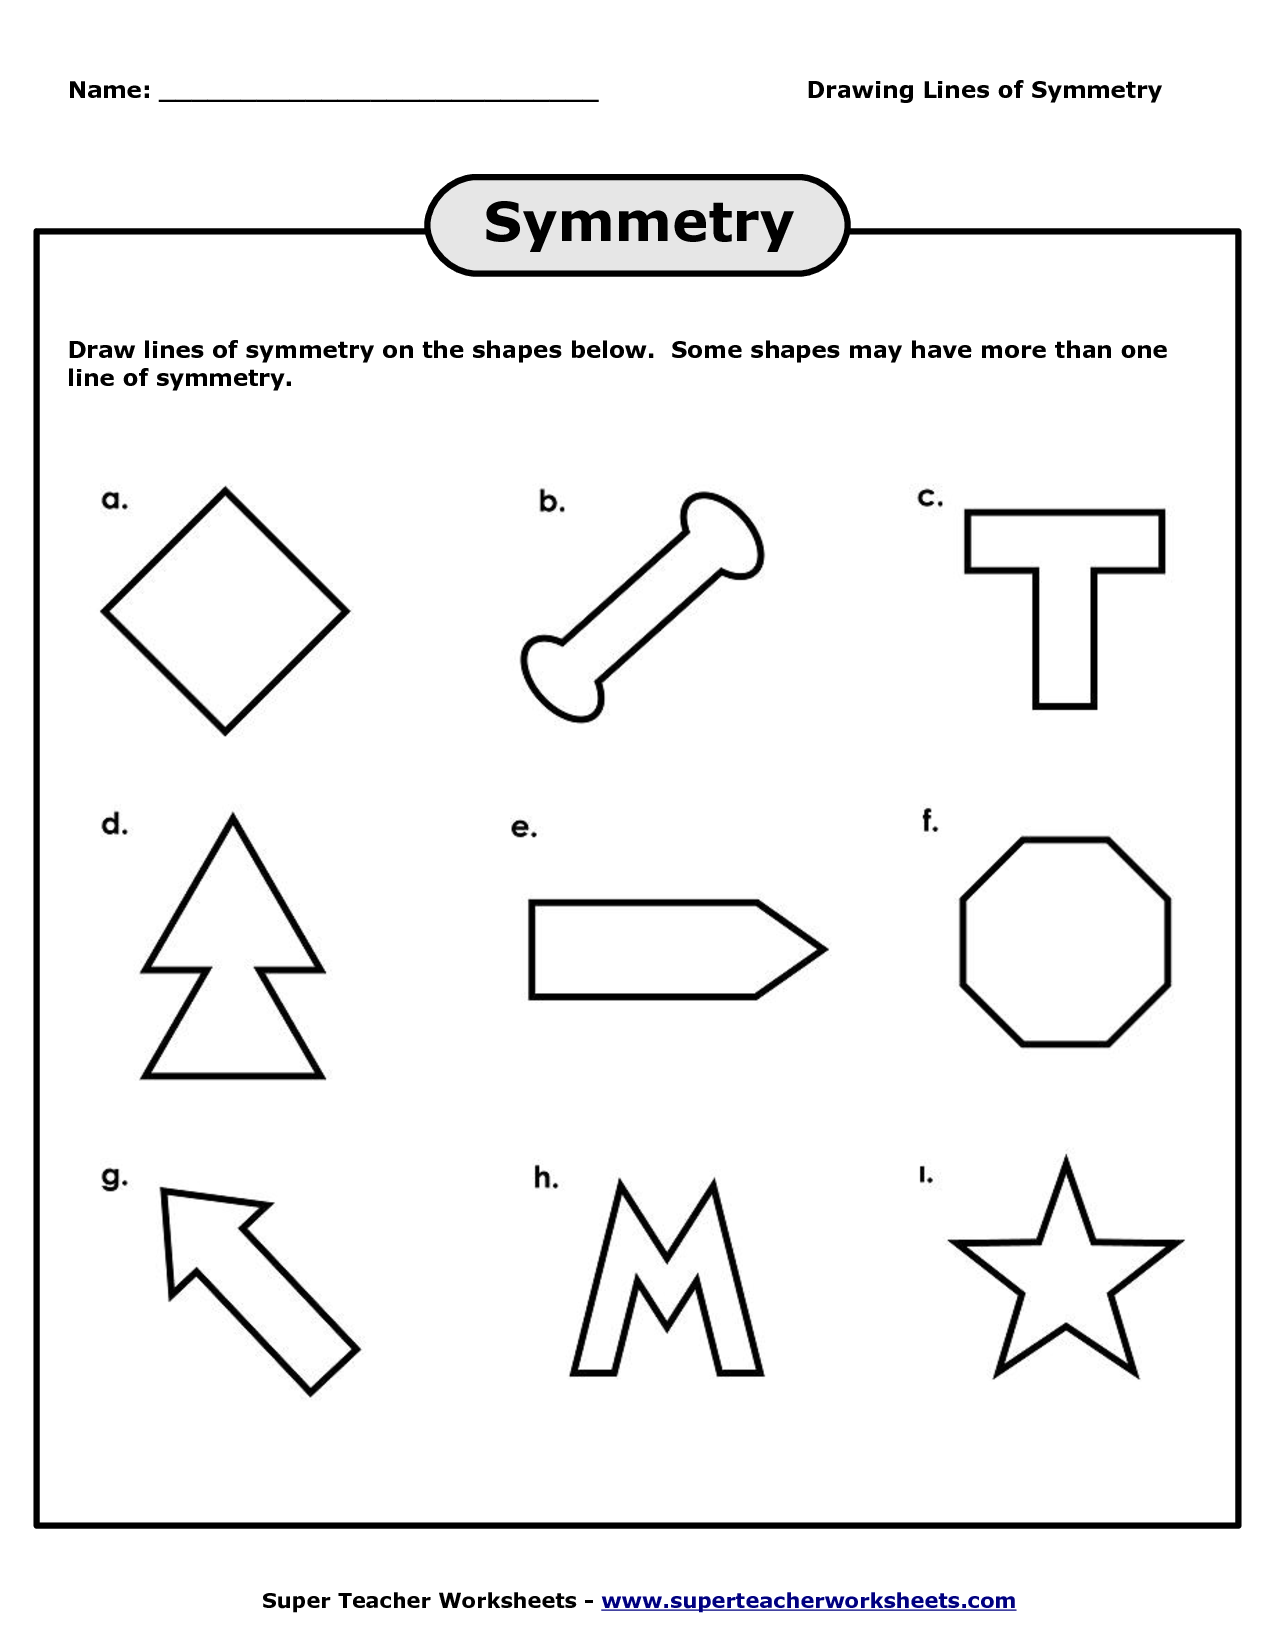 Lines Of Symmetry Worksheets Free Worksheets Library – Symmetry Worksheets 4th Grade